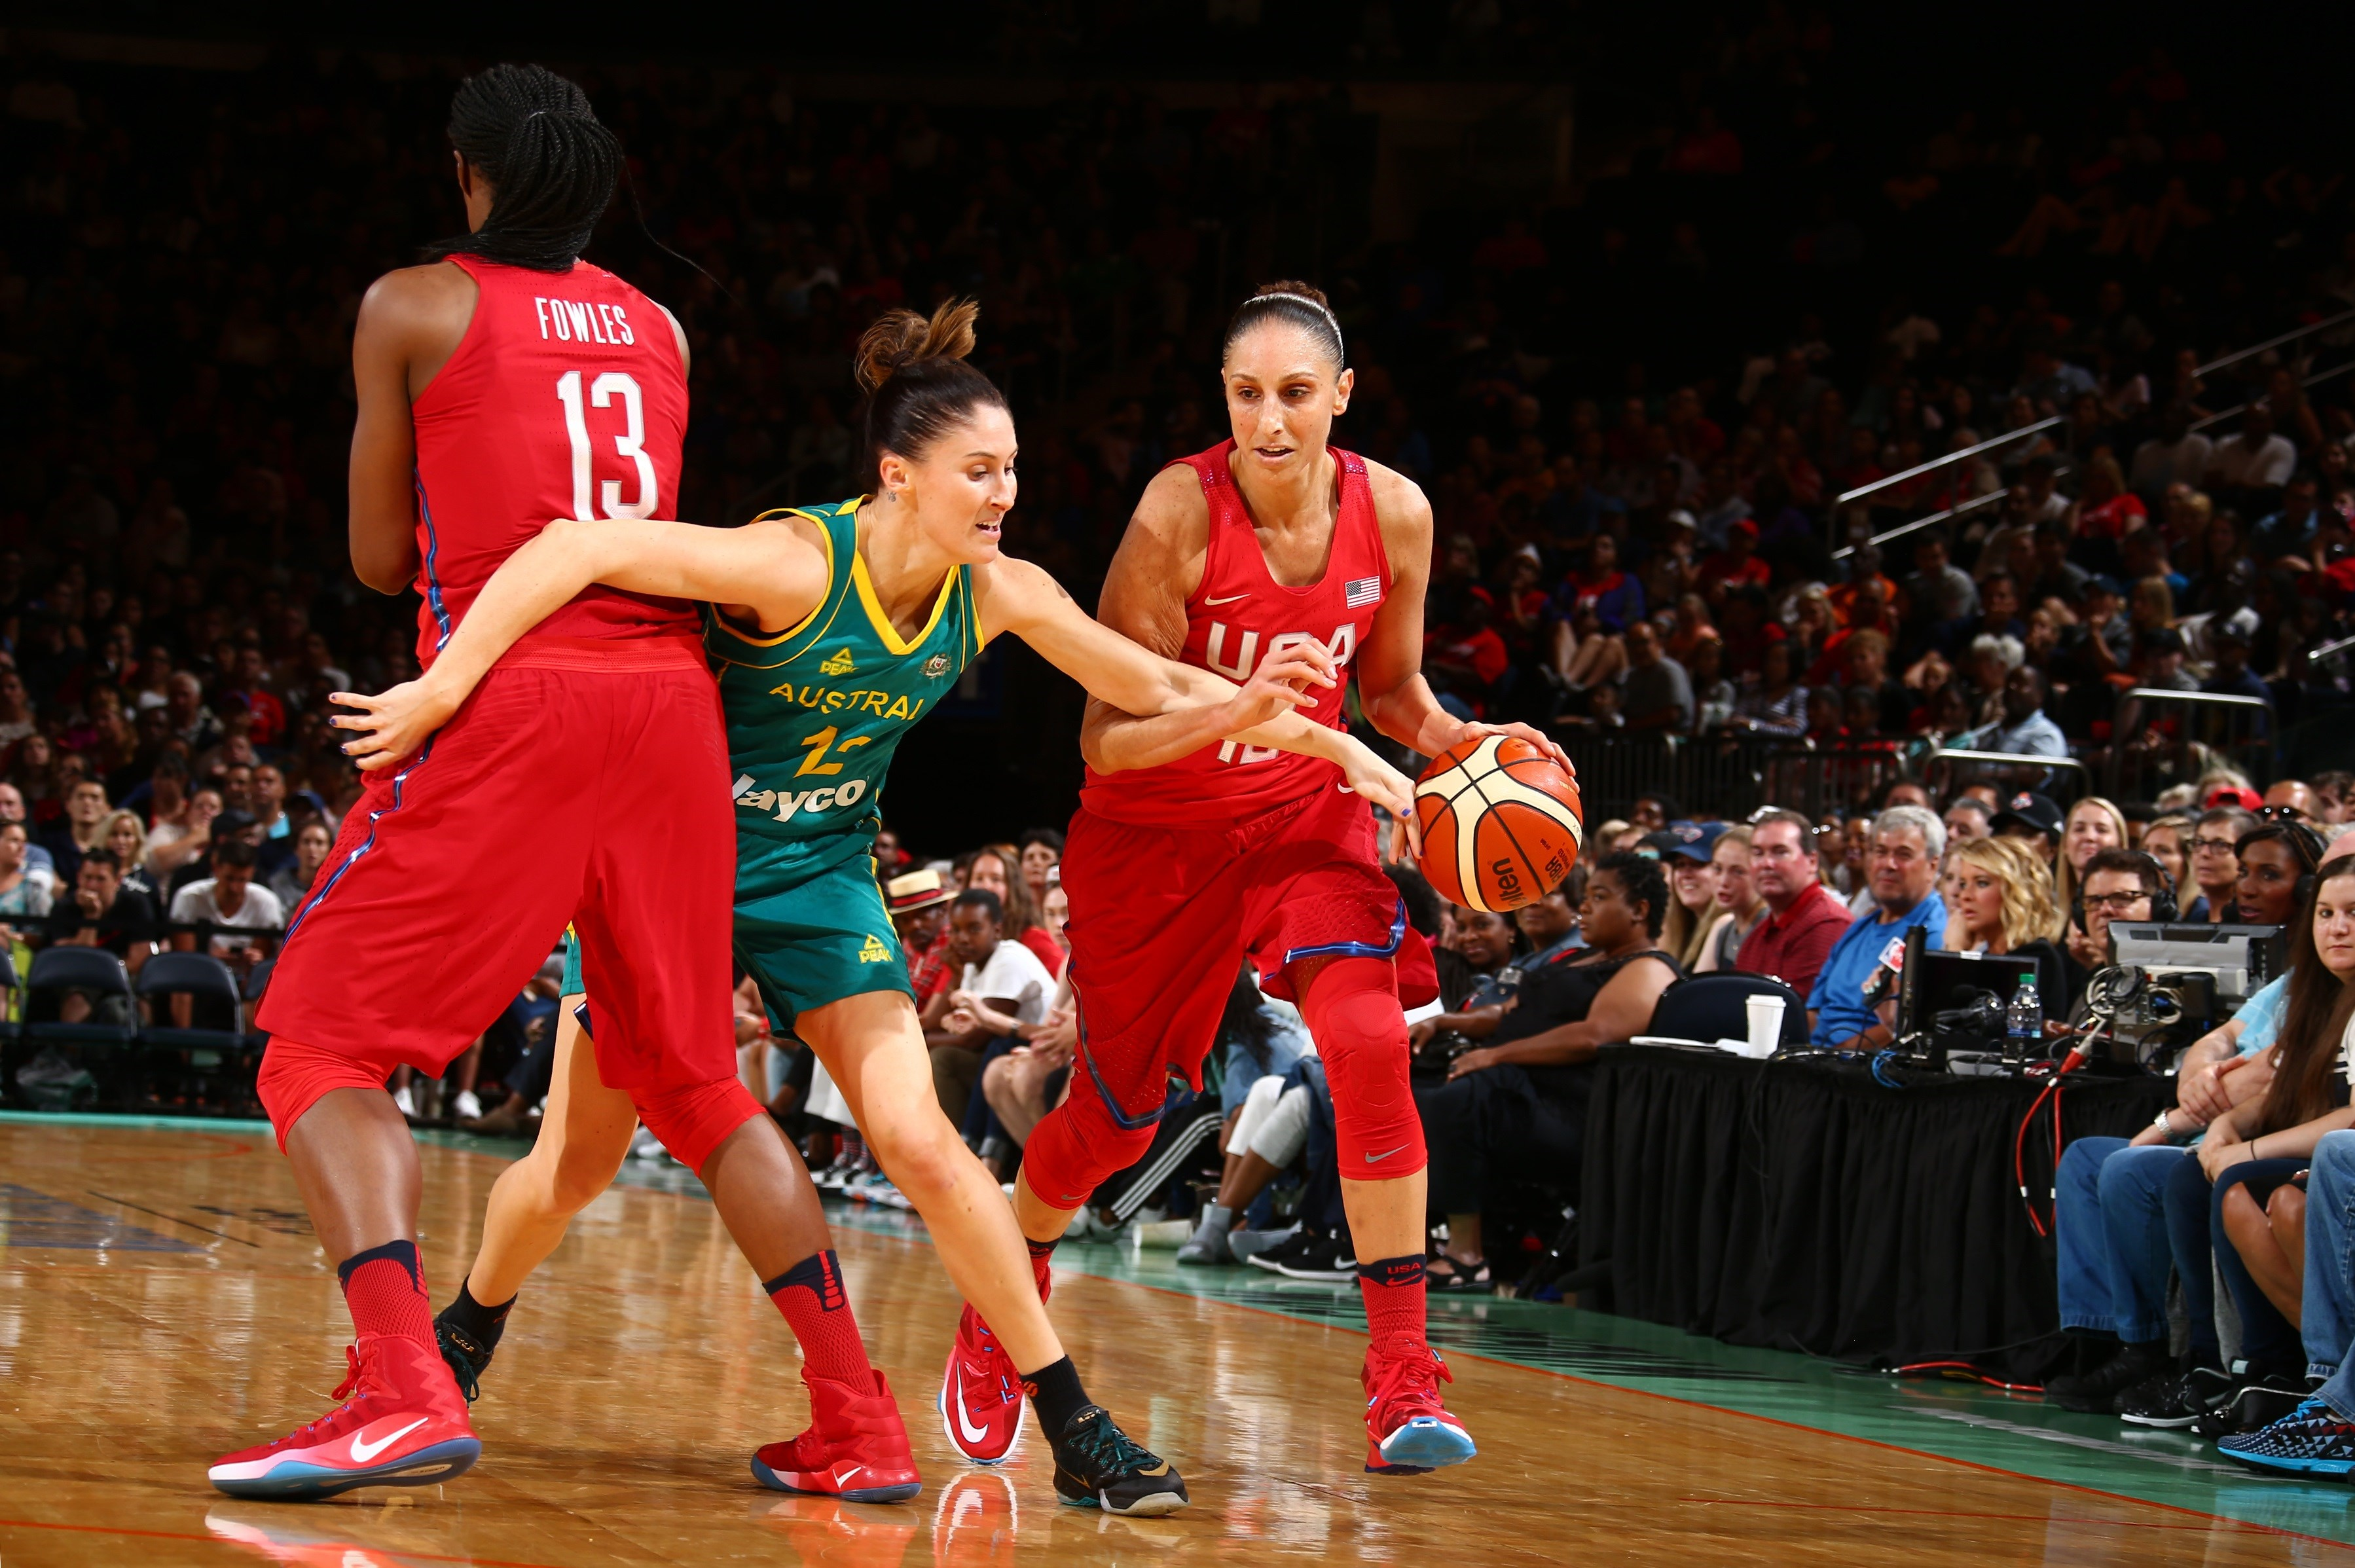 NEW YORK, NY - JULY 31:  Diana Taurasi #12 of the USA Basketball Women's National Team moves the ball against Katie Rae Ebzery #12 of Australia on July 31, 2016 at Madison Square Garden in New York, New York. (Photo by Nathaniel S. Butler/NBAE via Getty I